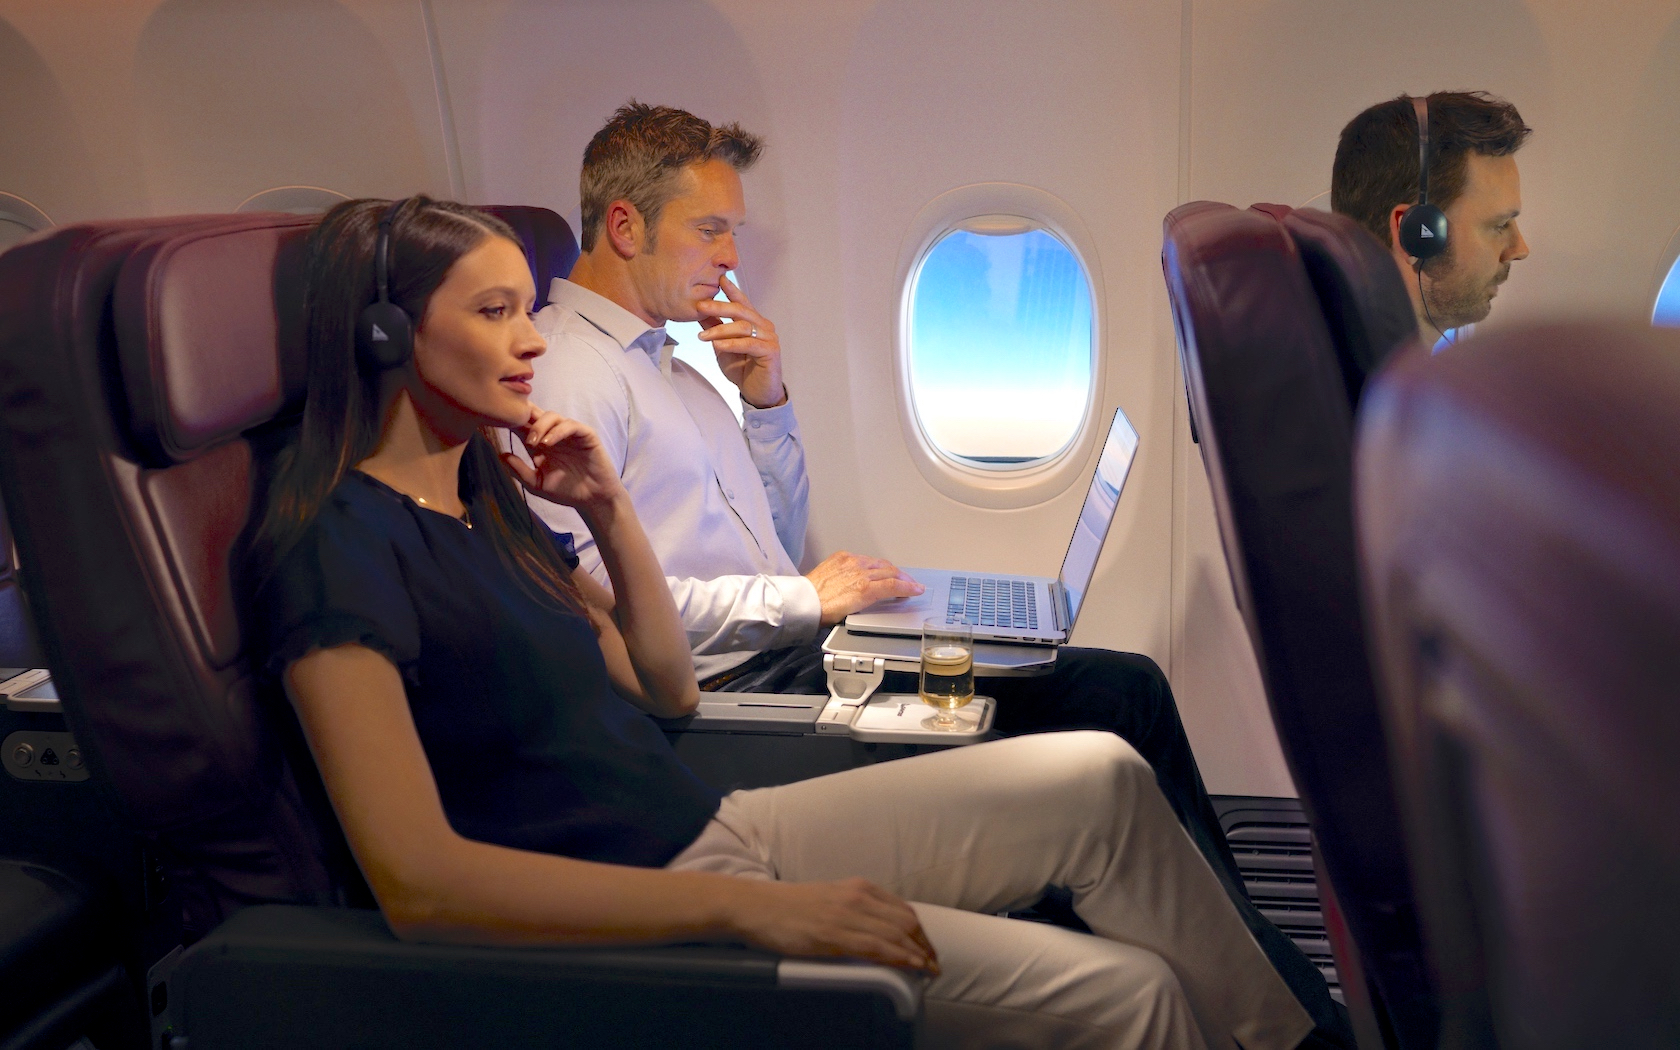 How To Get Free Qantas Wi-Fi & The Best Stuff To Do When You